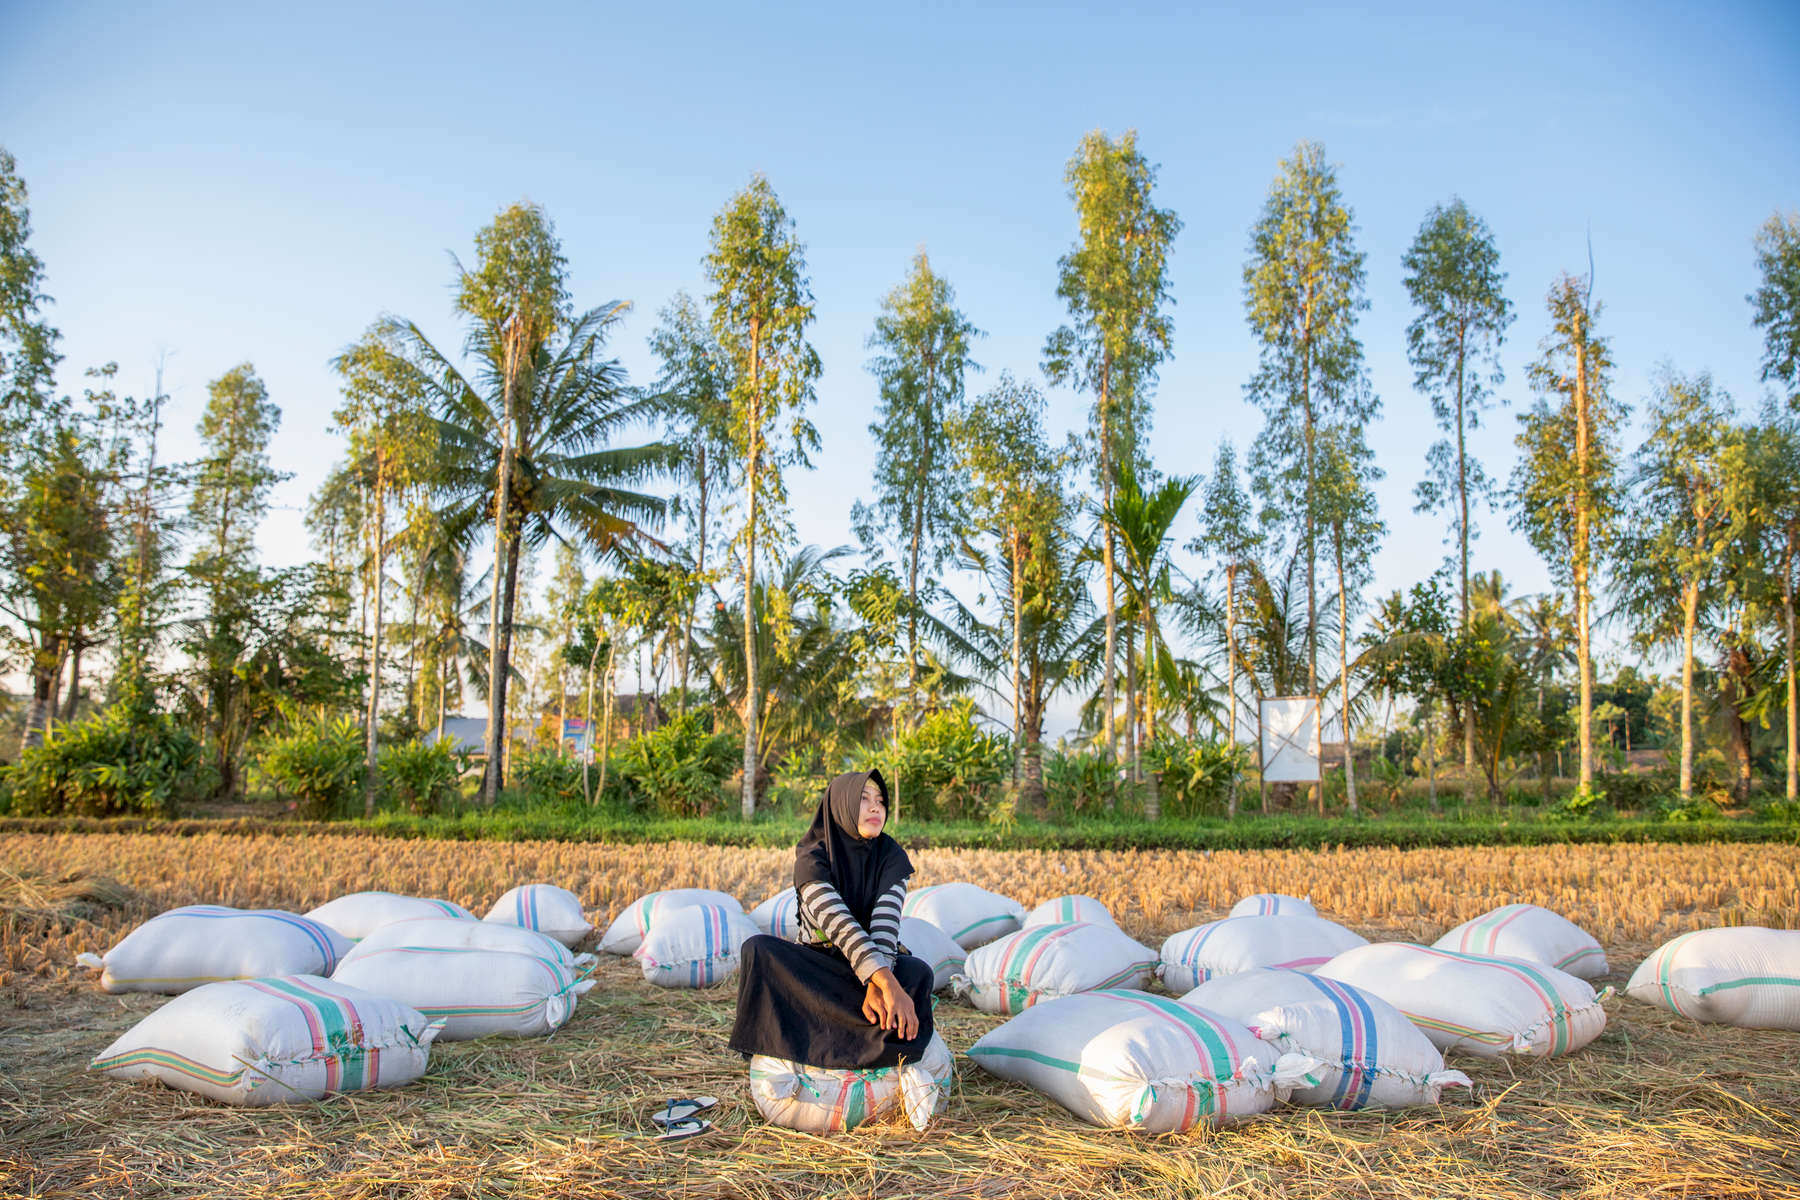 Ida sits on bags of recently harvested rice.  At 23 years old, she is the youngest female farmer in Terara, a small village on the island of Lombok. As far as she knows, she's the youngest farmer in all four neighboring villages as well.Ida started working in the rice fields when she was 13 years old, in the seventh grade. She learned how to farm by watching her parents and her two older brothers, who've been farming since she was born. Ida's dream was to become a pilot — to explore outside of her village. Instead, she's followed in the footsteps of her family. She dropped out of school after the ninth grade, in 2012, as a result of mounting pressure from her parents – particularly her mother – who felt she should be helping them in the field instead of studying.Ida's mom holds a very conservative, traditional Indonesian view. She never went to school, and believes there's no need for girls to pursue higher education. In part, because it's difficult to find jobs with or without education, but mostly because she believes they're needed most at home – to take care of the family and tend to the fields. When Ida's asked if she enjoys farming, she says she does because she has to, because there's no other choice.As the treasurer of her farmer group, Ida is one of the most trusted members in her community, tasked with tracking and managing finances each month. It's a position with great responsibility, which requires high attention to detail.Mercy Corps is helping Ida and her group produce greater yields in the face of an increasingly challenging climate by providing training on effective farming practices. We have also provided training in administration and financial reporting, so Ida and other leaders of her group are better positioned to help their group stay strong. Mercy Corps has also connected Ida to Mandiri Cash, which has allowed her to both save time and money — about 2 million rupiah of her own savings ($143 USD).